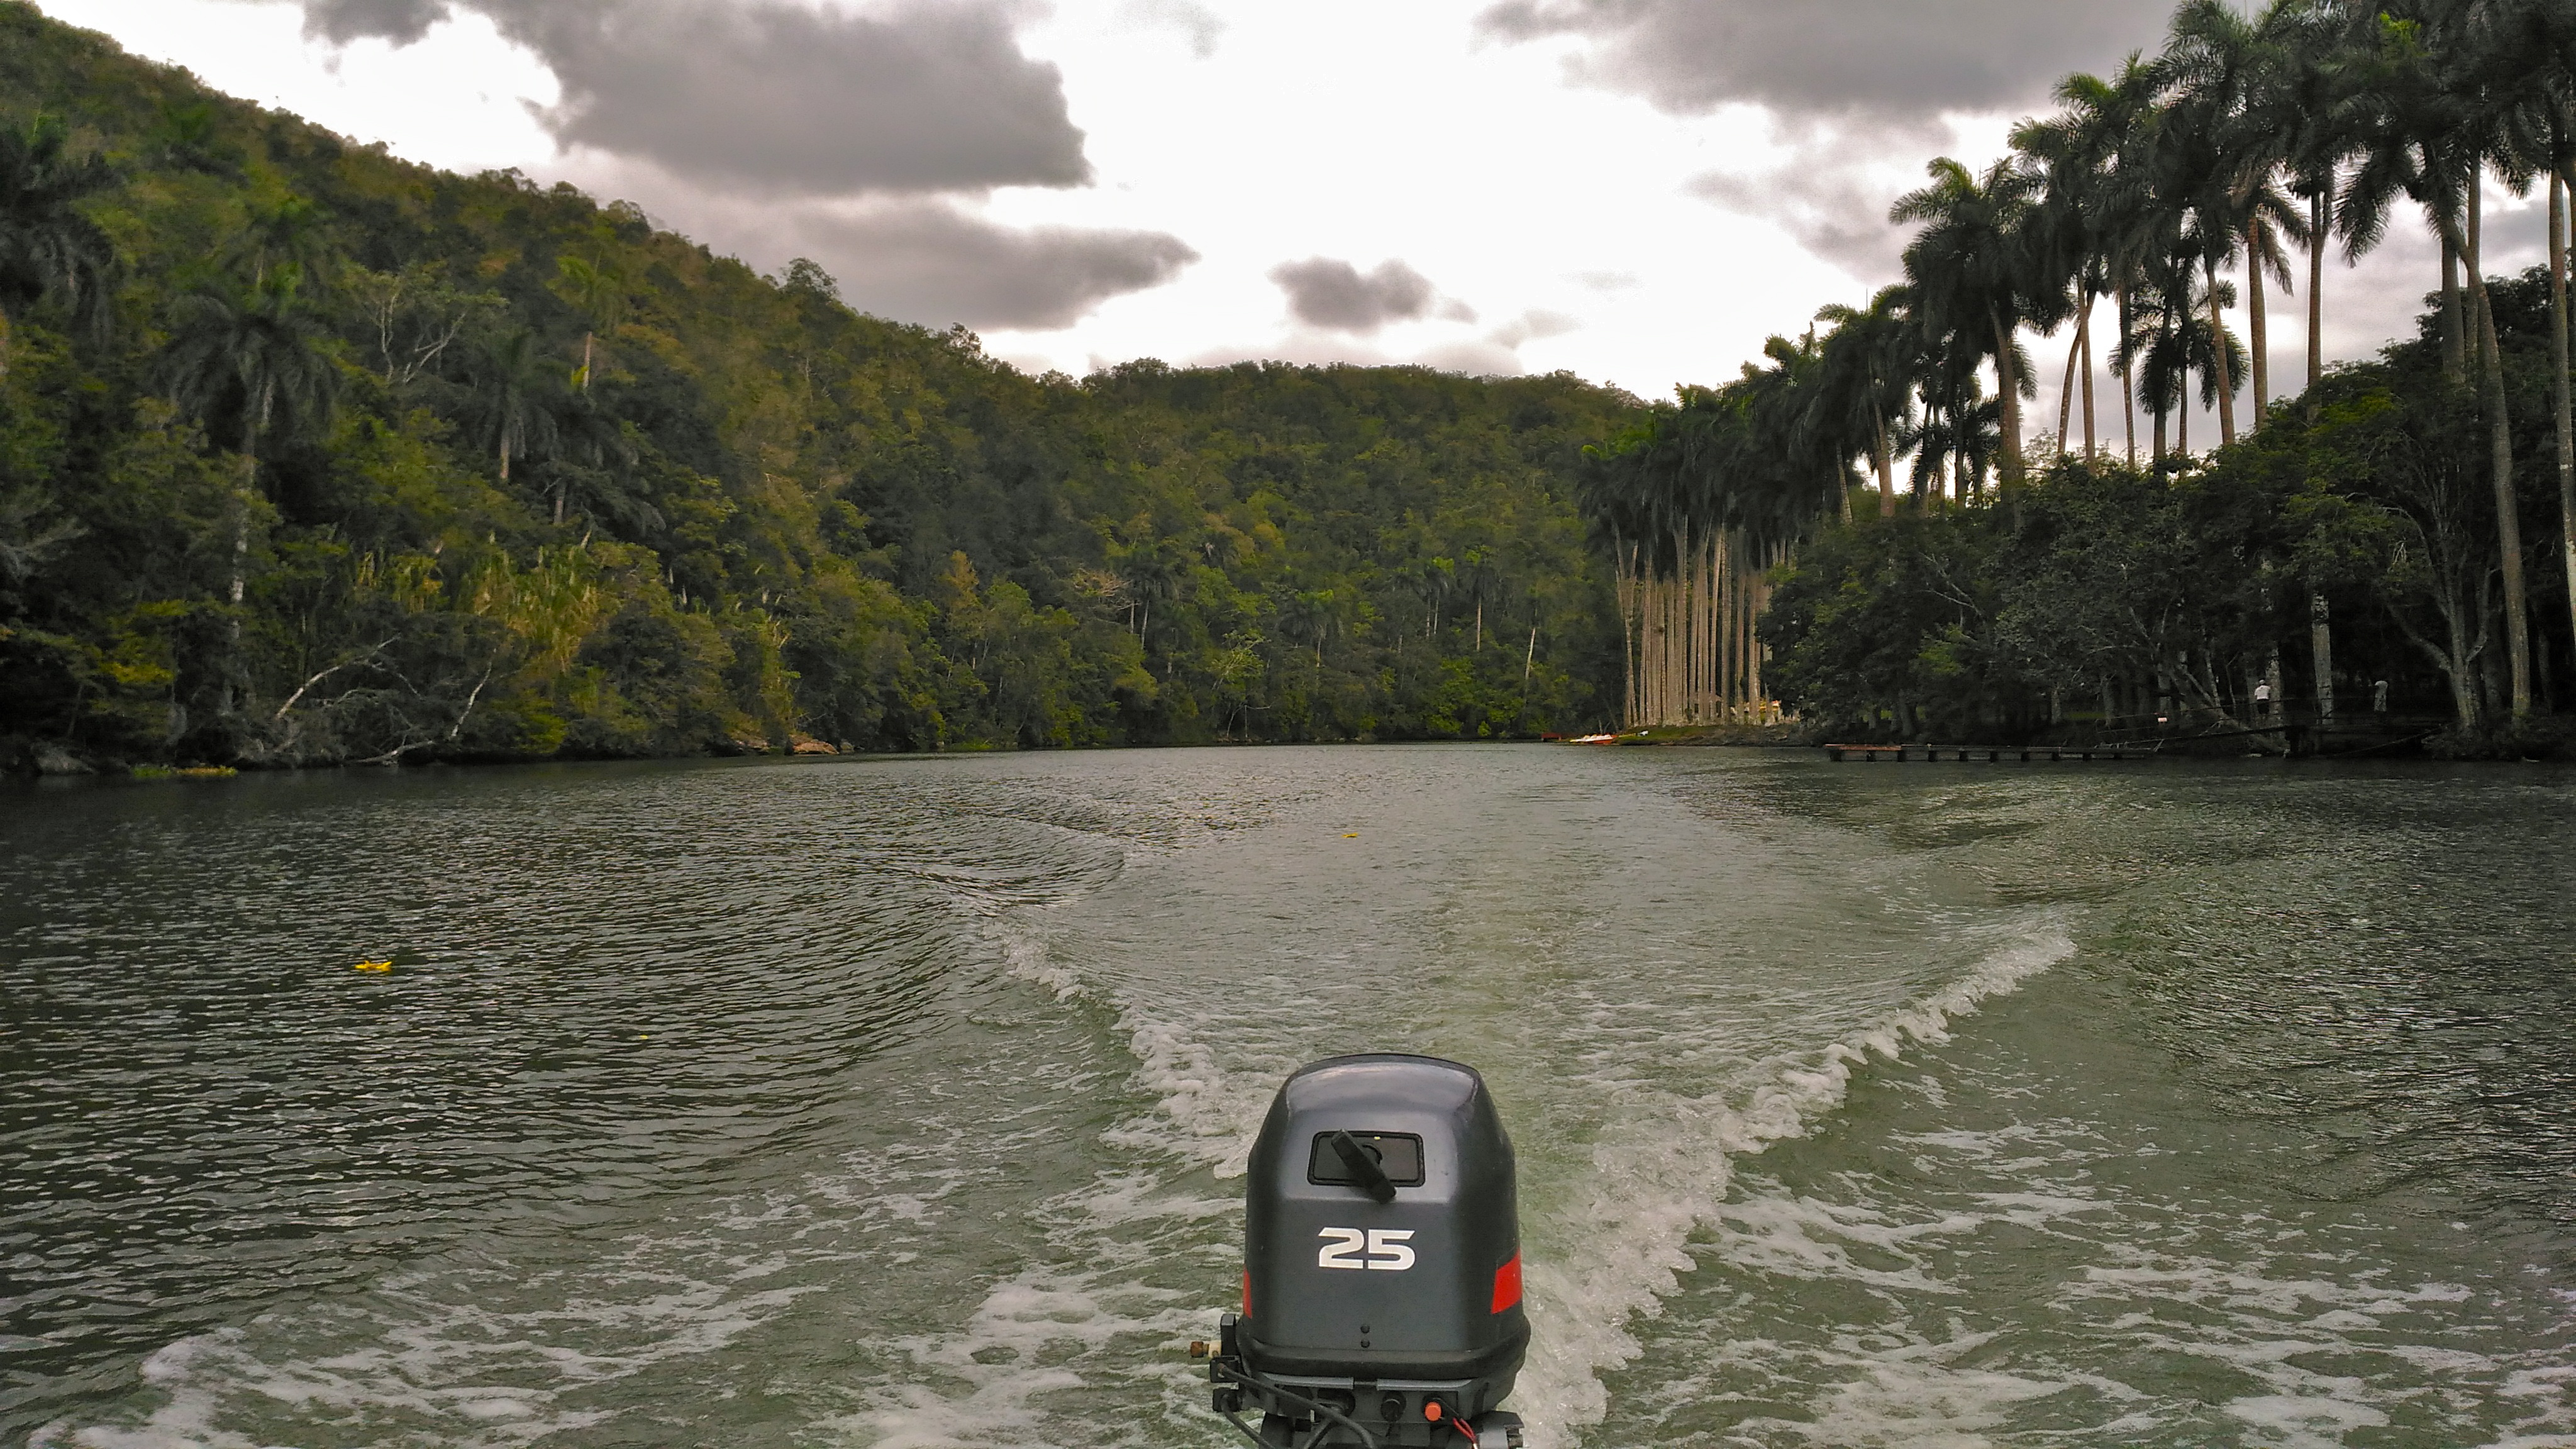 boating on river canimar cuba travel blog solo female is cuba safe for women travellers? can tourists go to cuba?